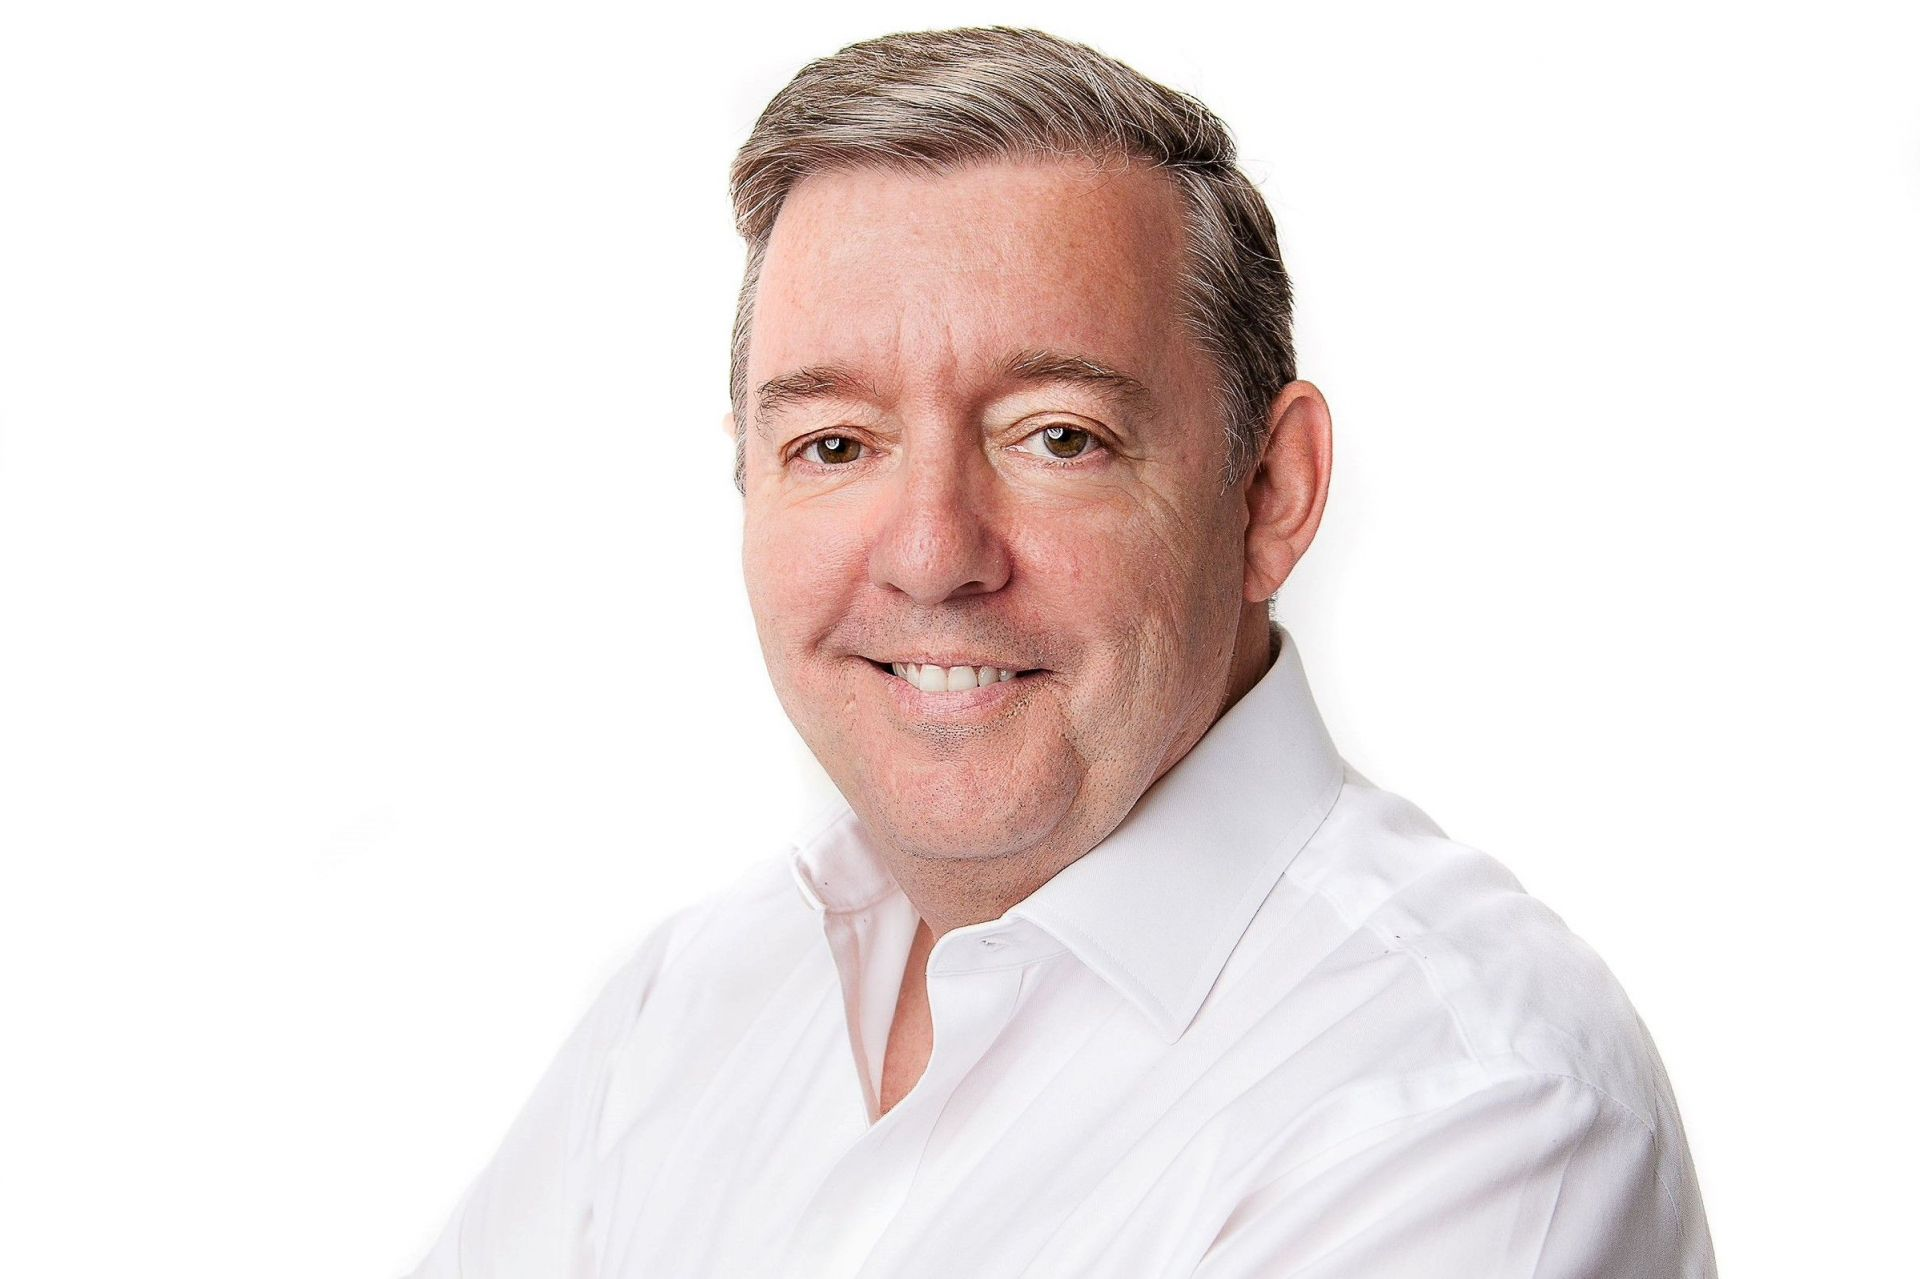 Inside Franchise Business: Stephen Duggan, CEO of MBCM Strata Specialists talks leadership, disruption and franchisees